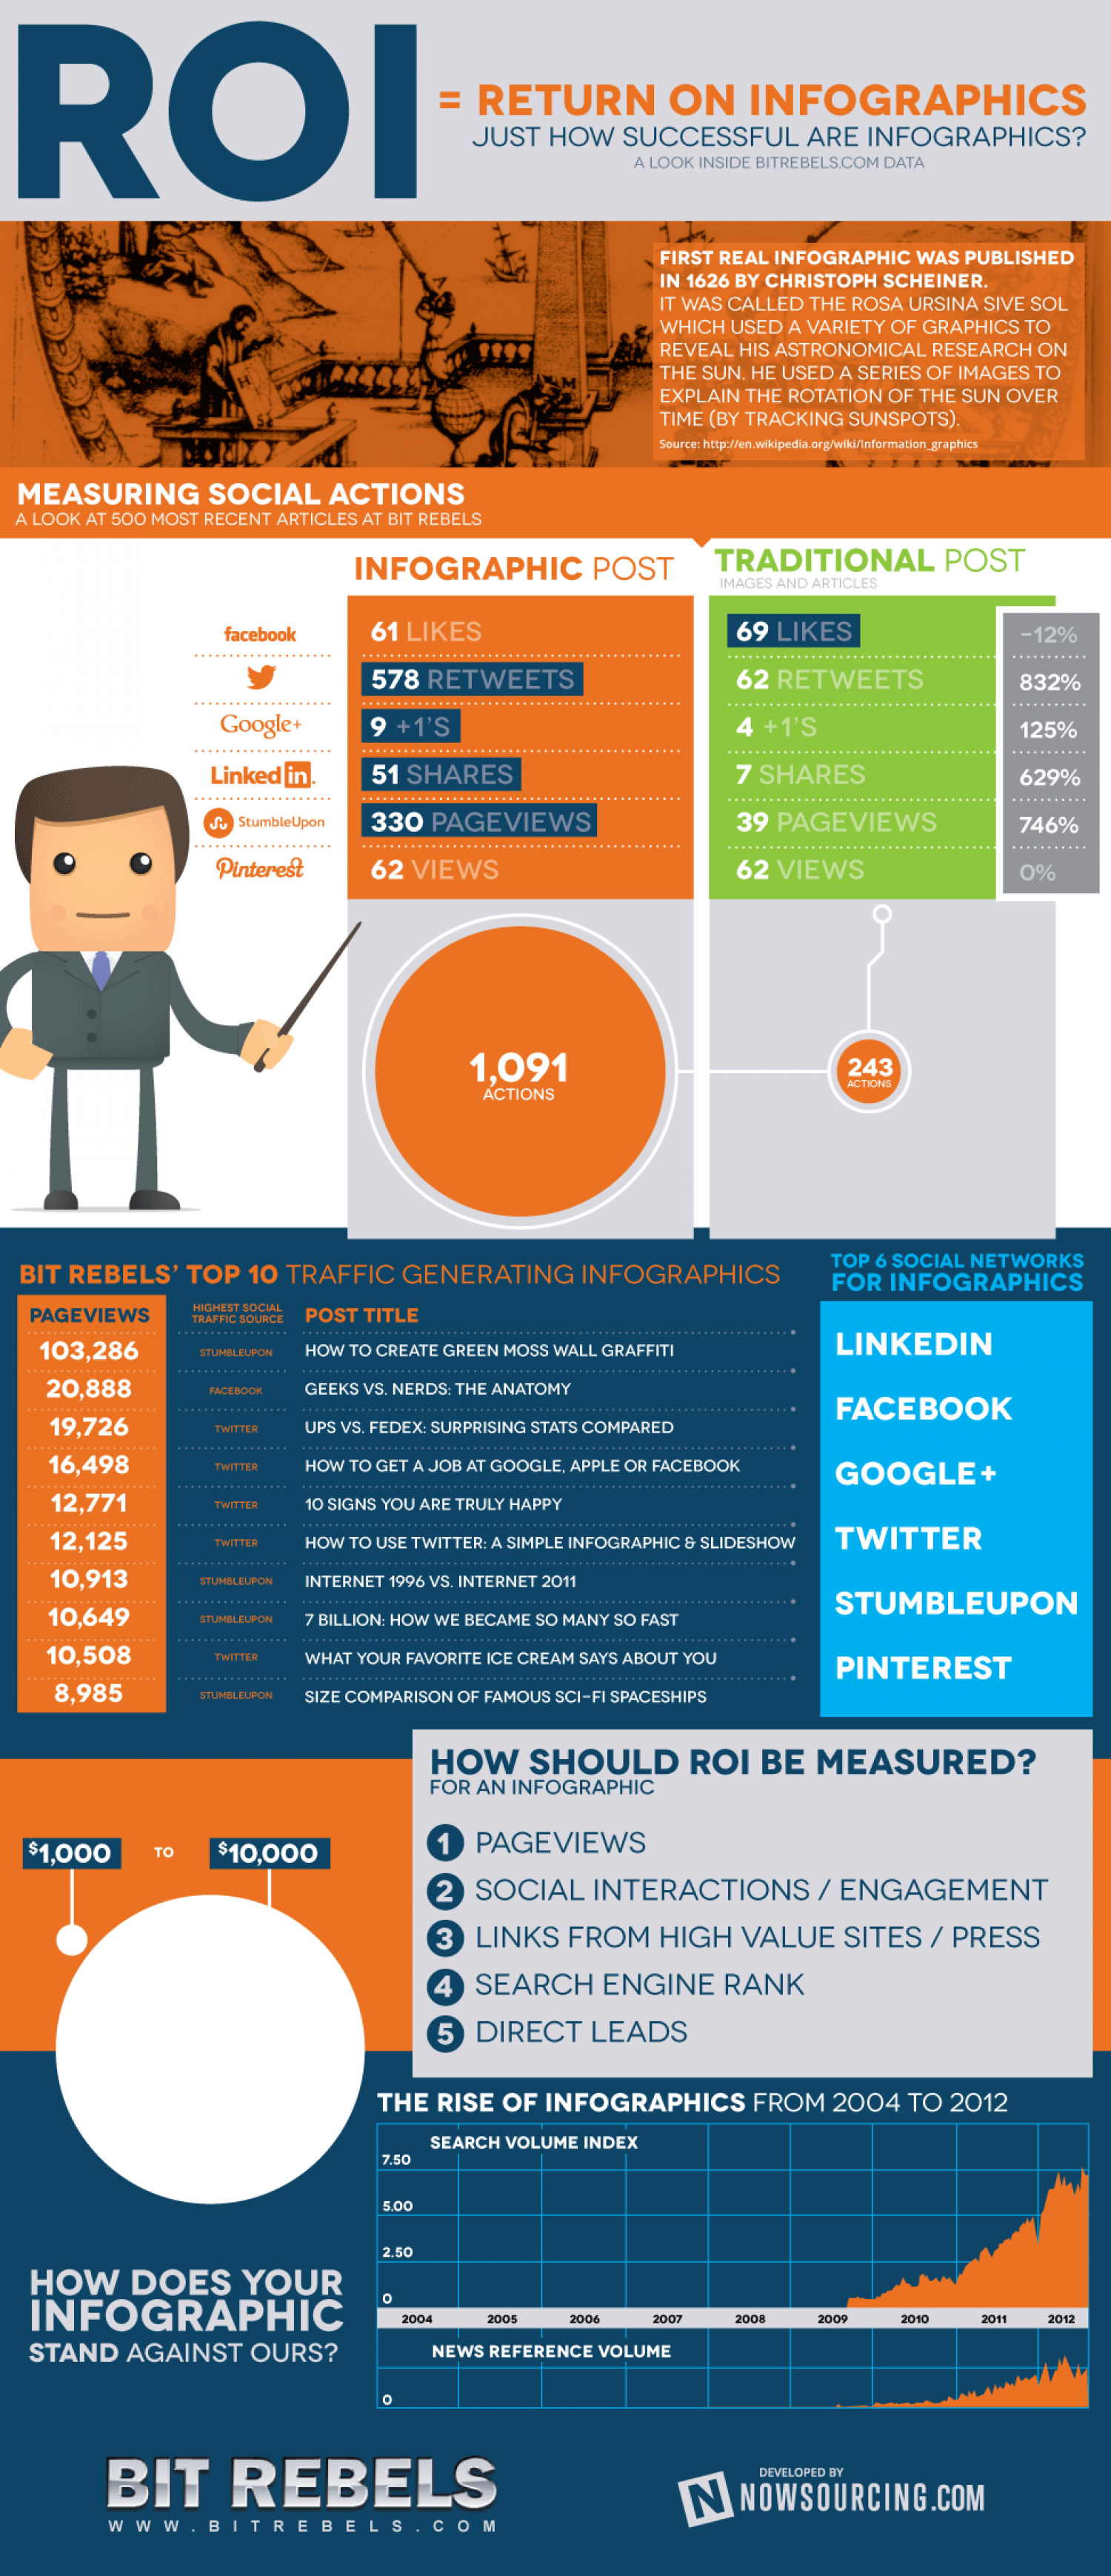 ROI - Return On Infographics Infographic